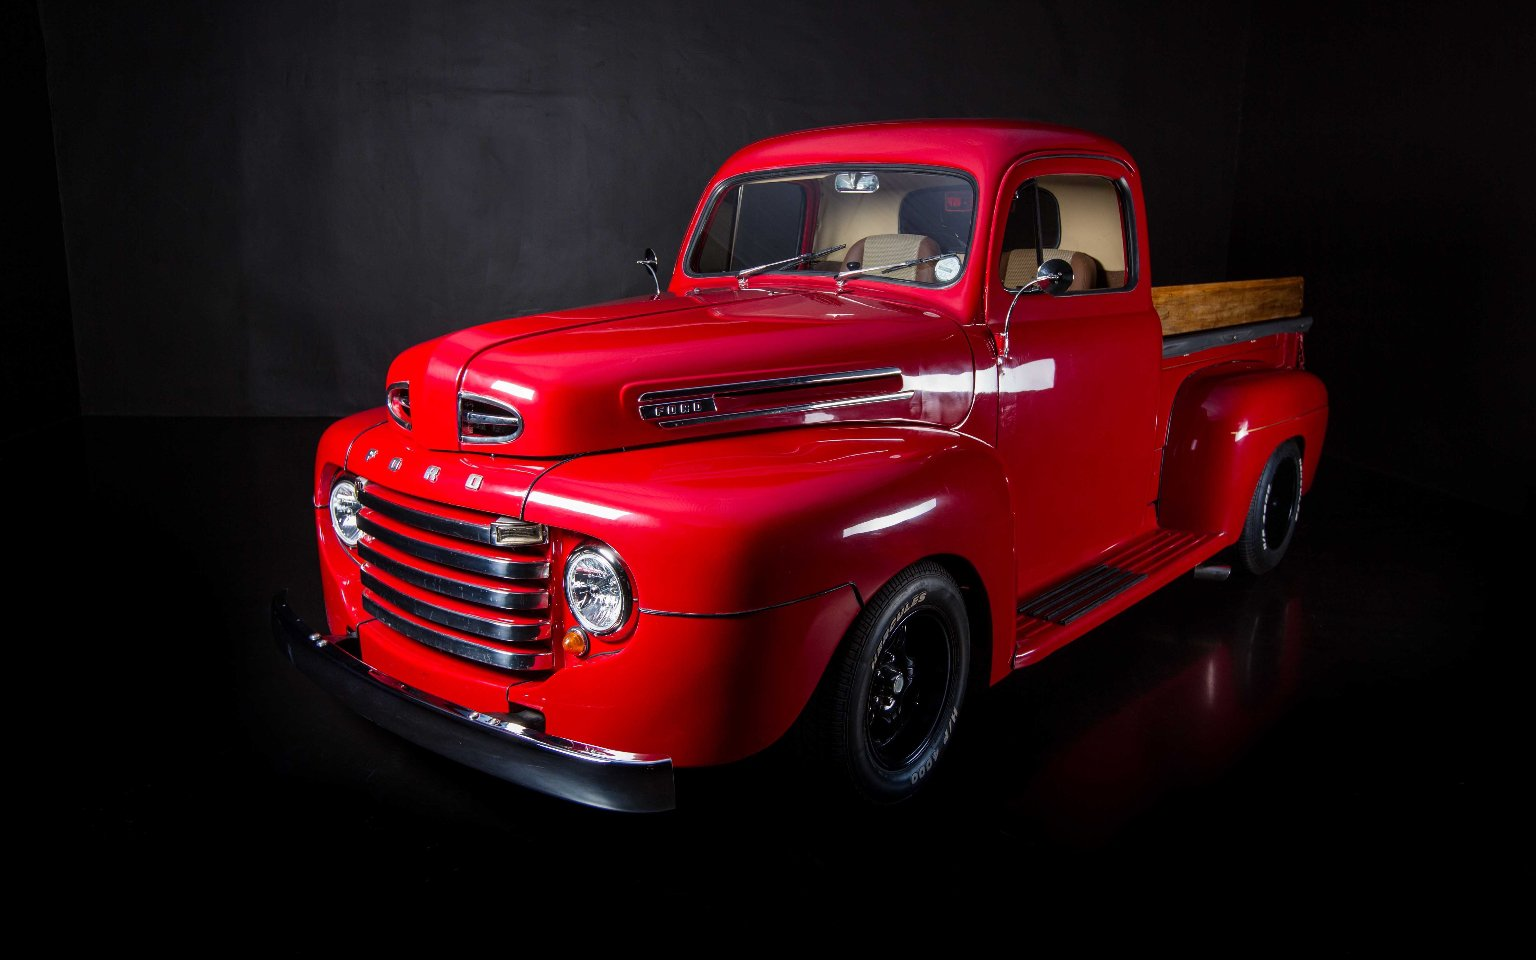 Ford F1 Truck